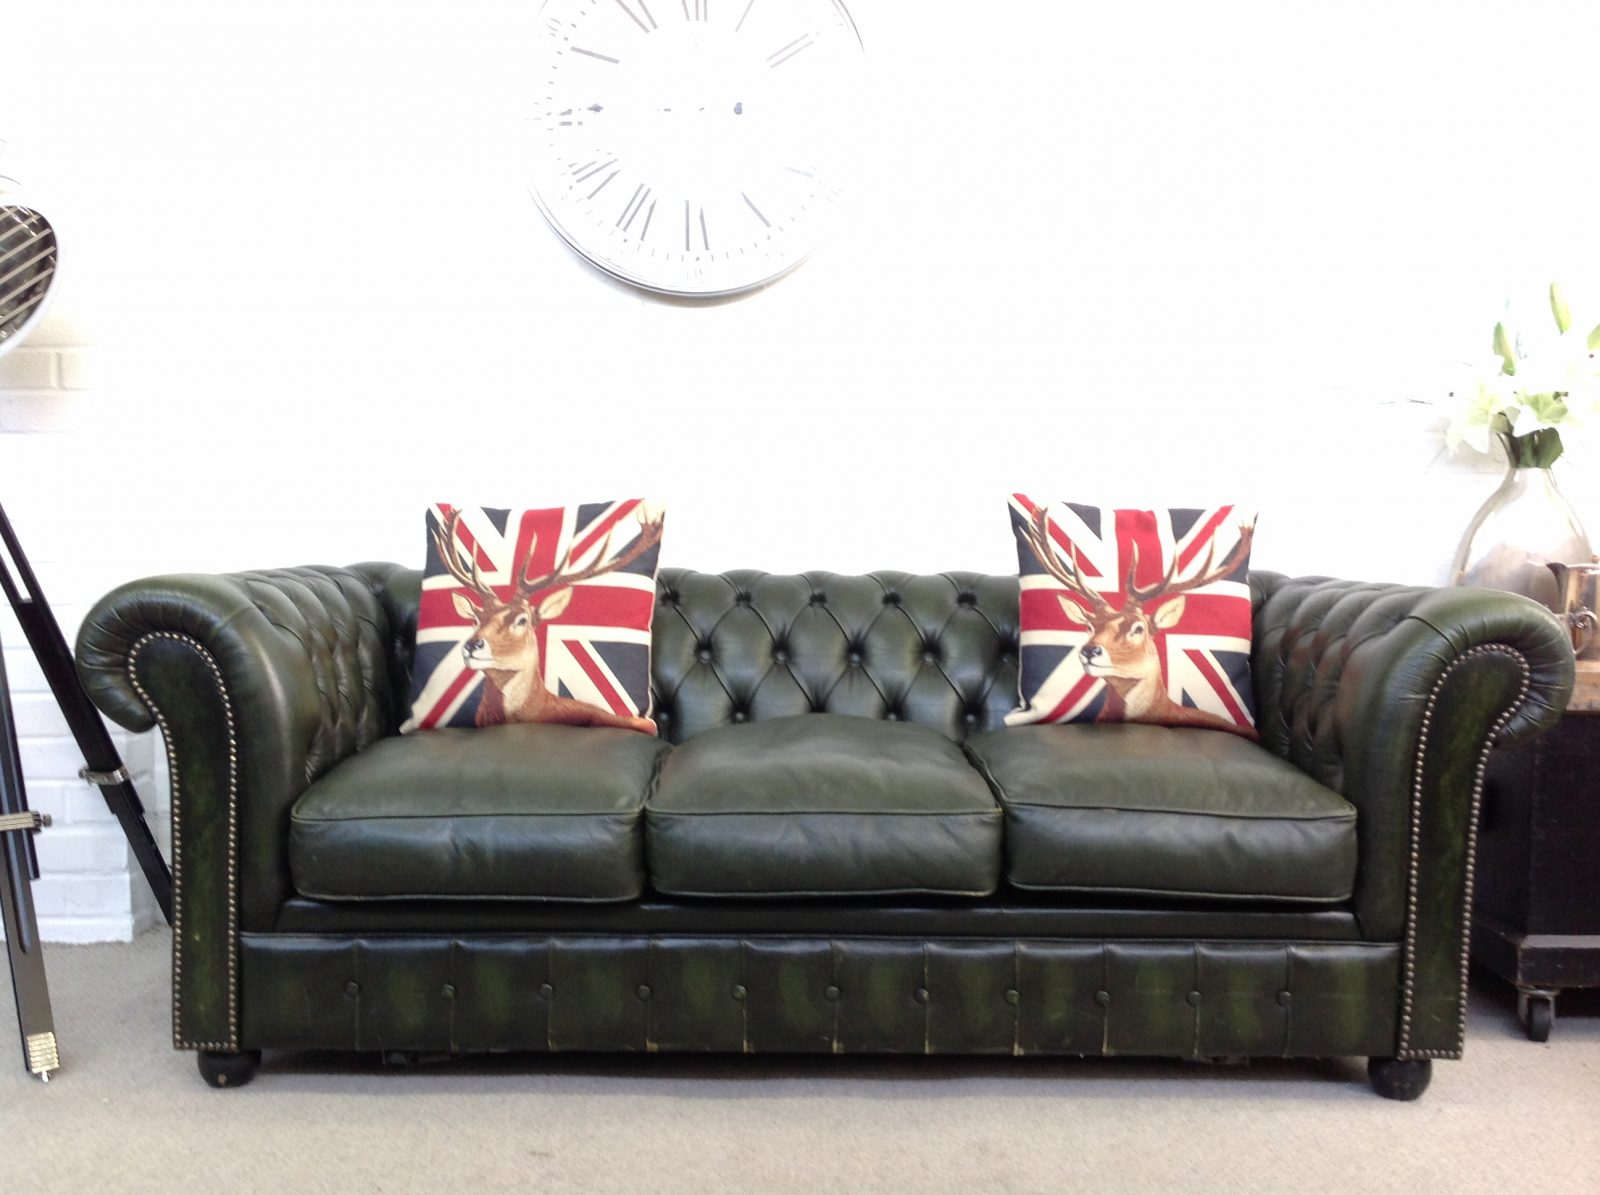 Forest Green Chesterfield Sofa Bed.